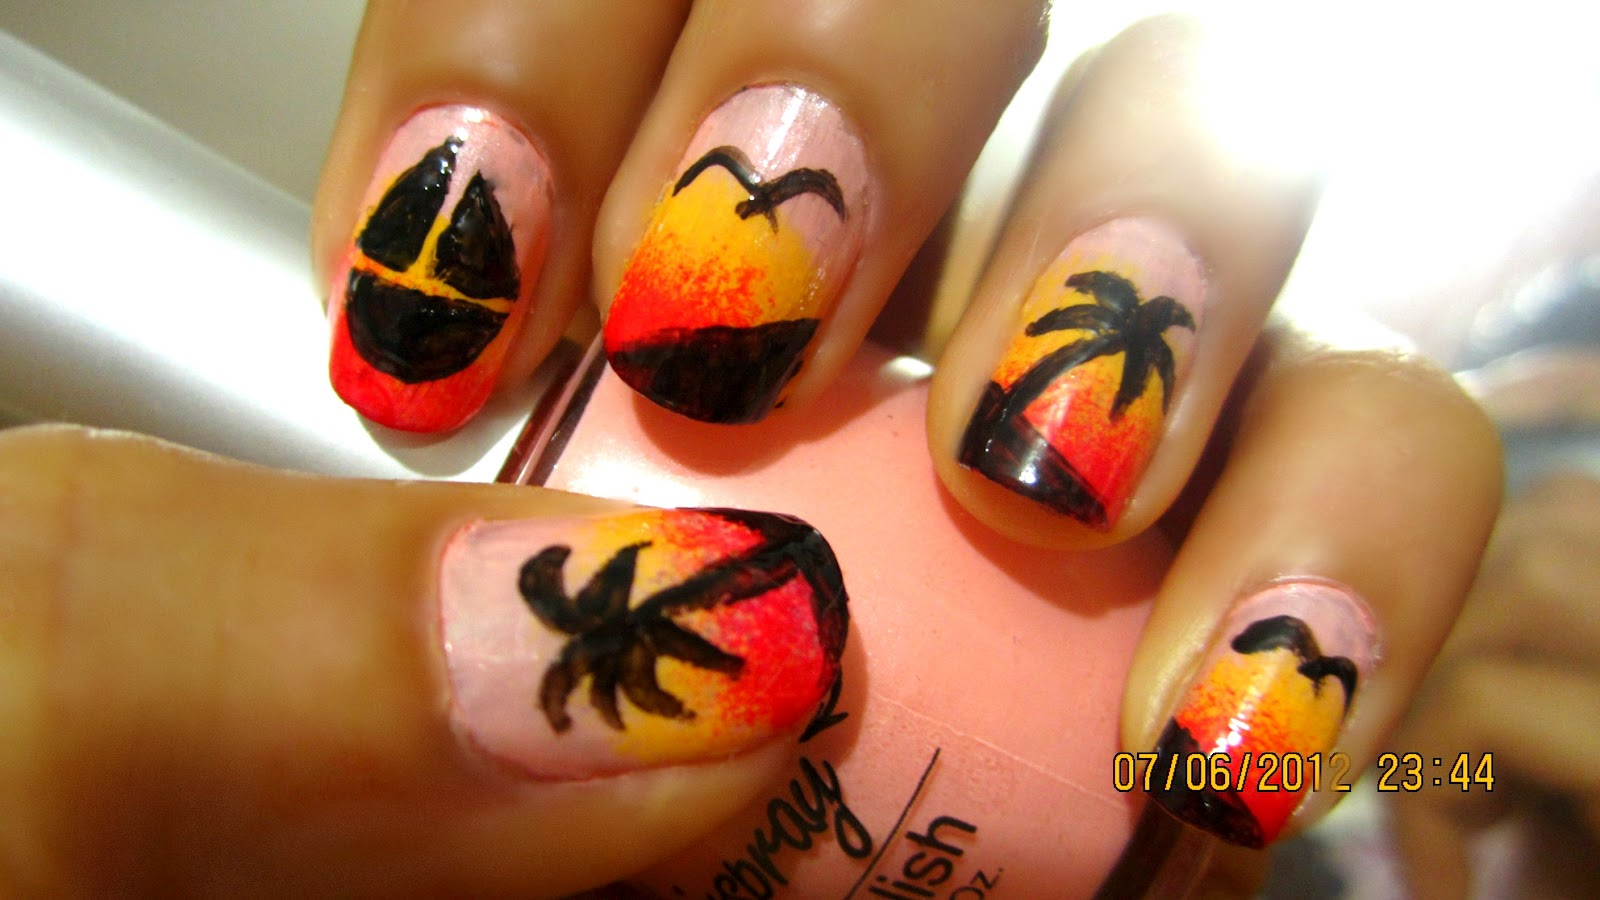 The Appealing Awesome easy to do nail design 2015 Images